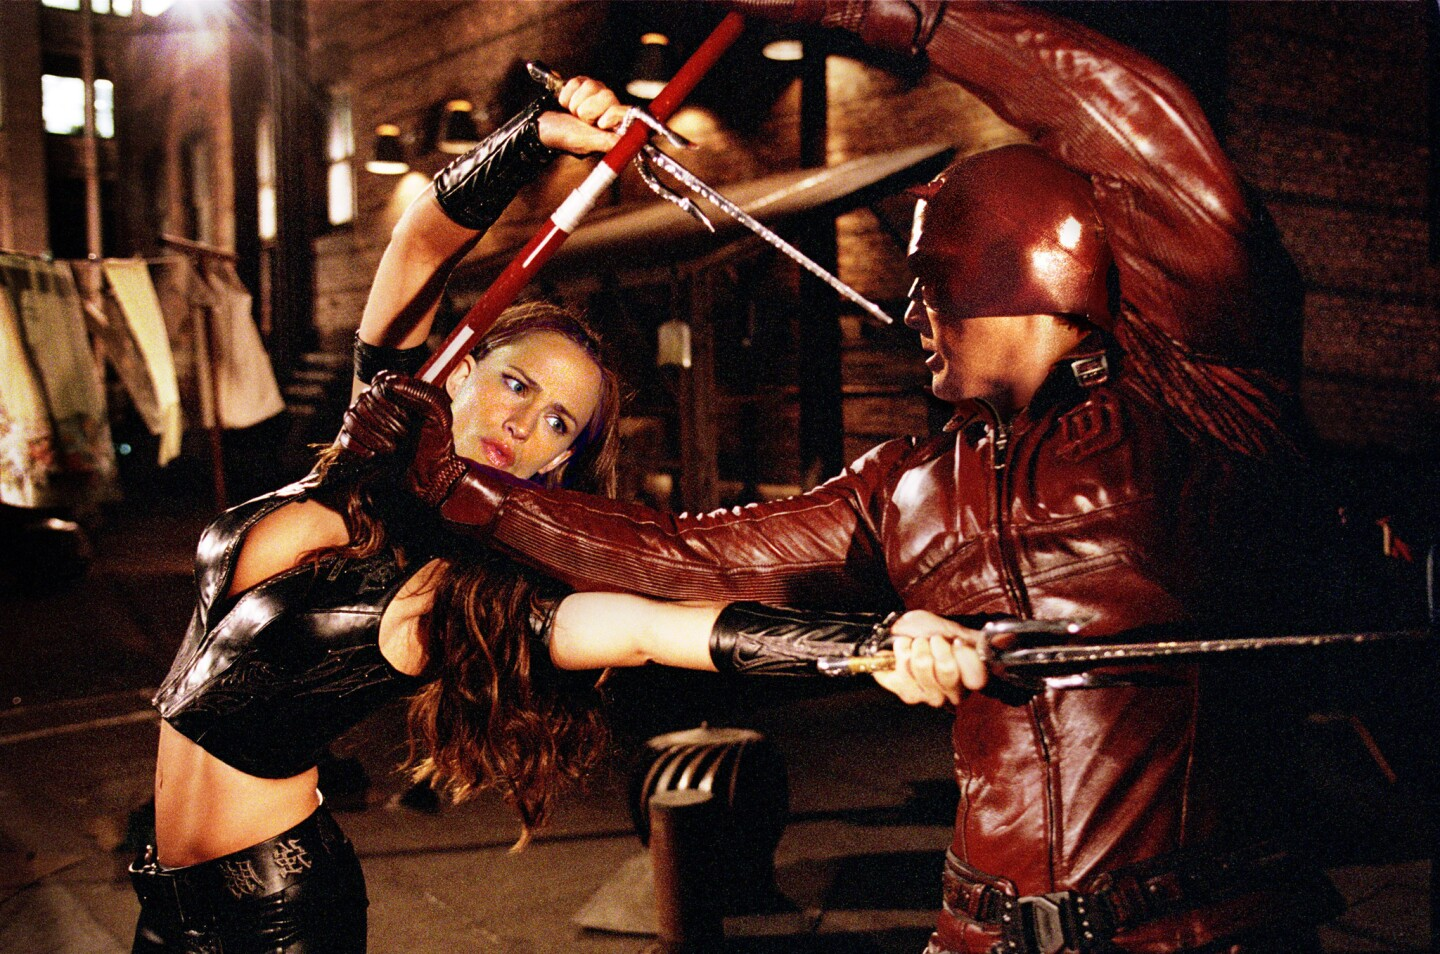 """After high-profile relationships with Gwyneth Paltrow and Jennifer Lopez, Ben Affleck met his future wife, Jennifer Garner, on the set of """"Daredevil,"""" a 2003 Marvel Comics-inspired film in which the two costarred."""